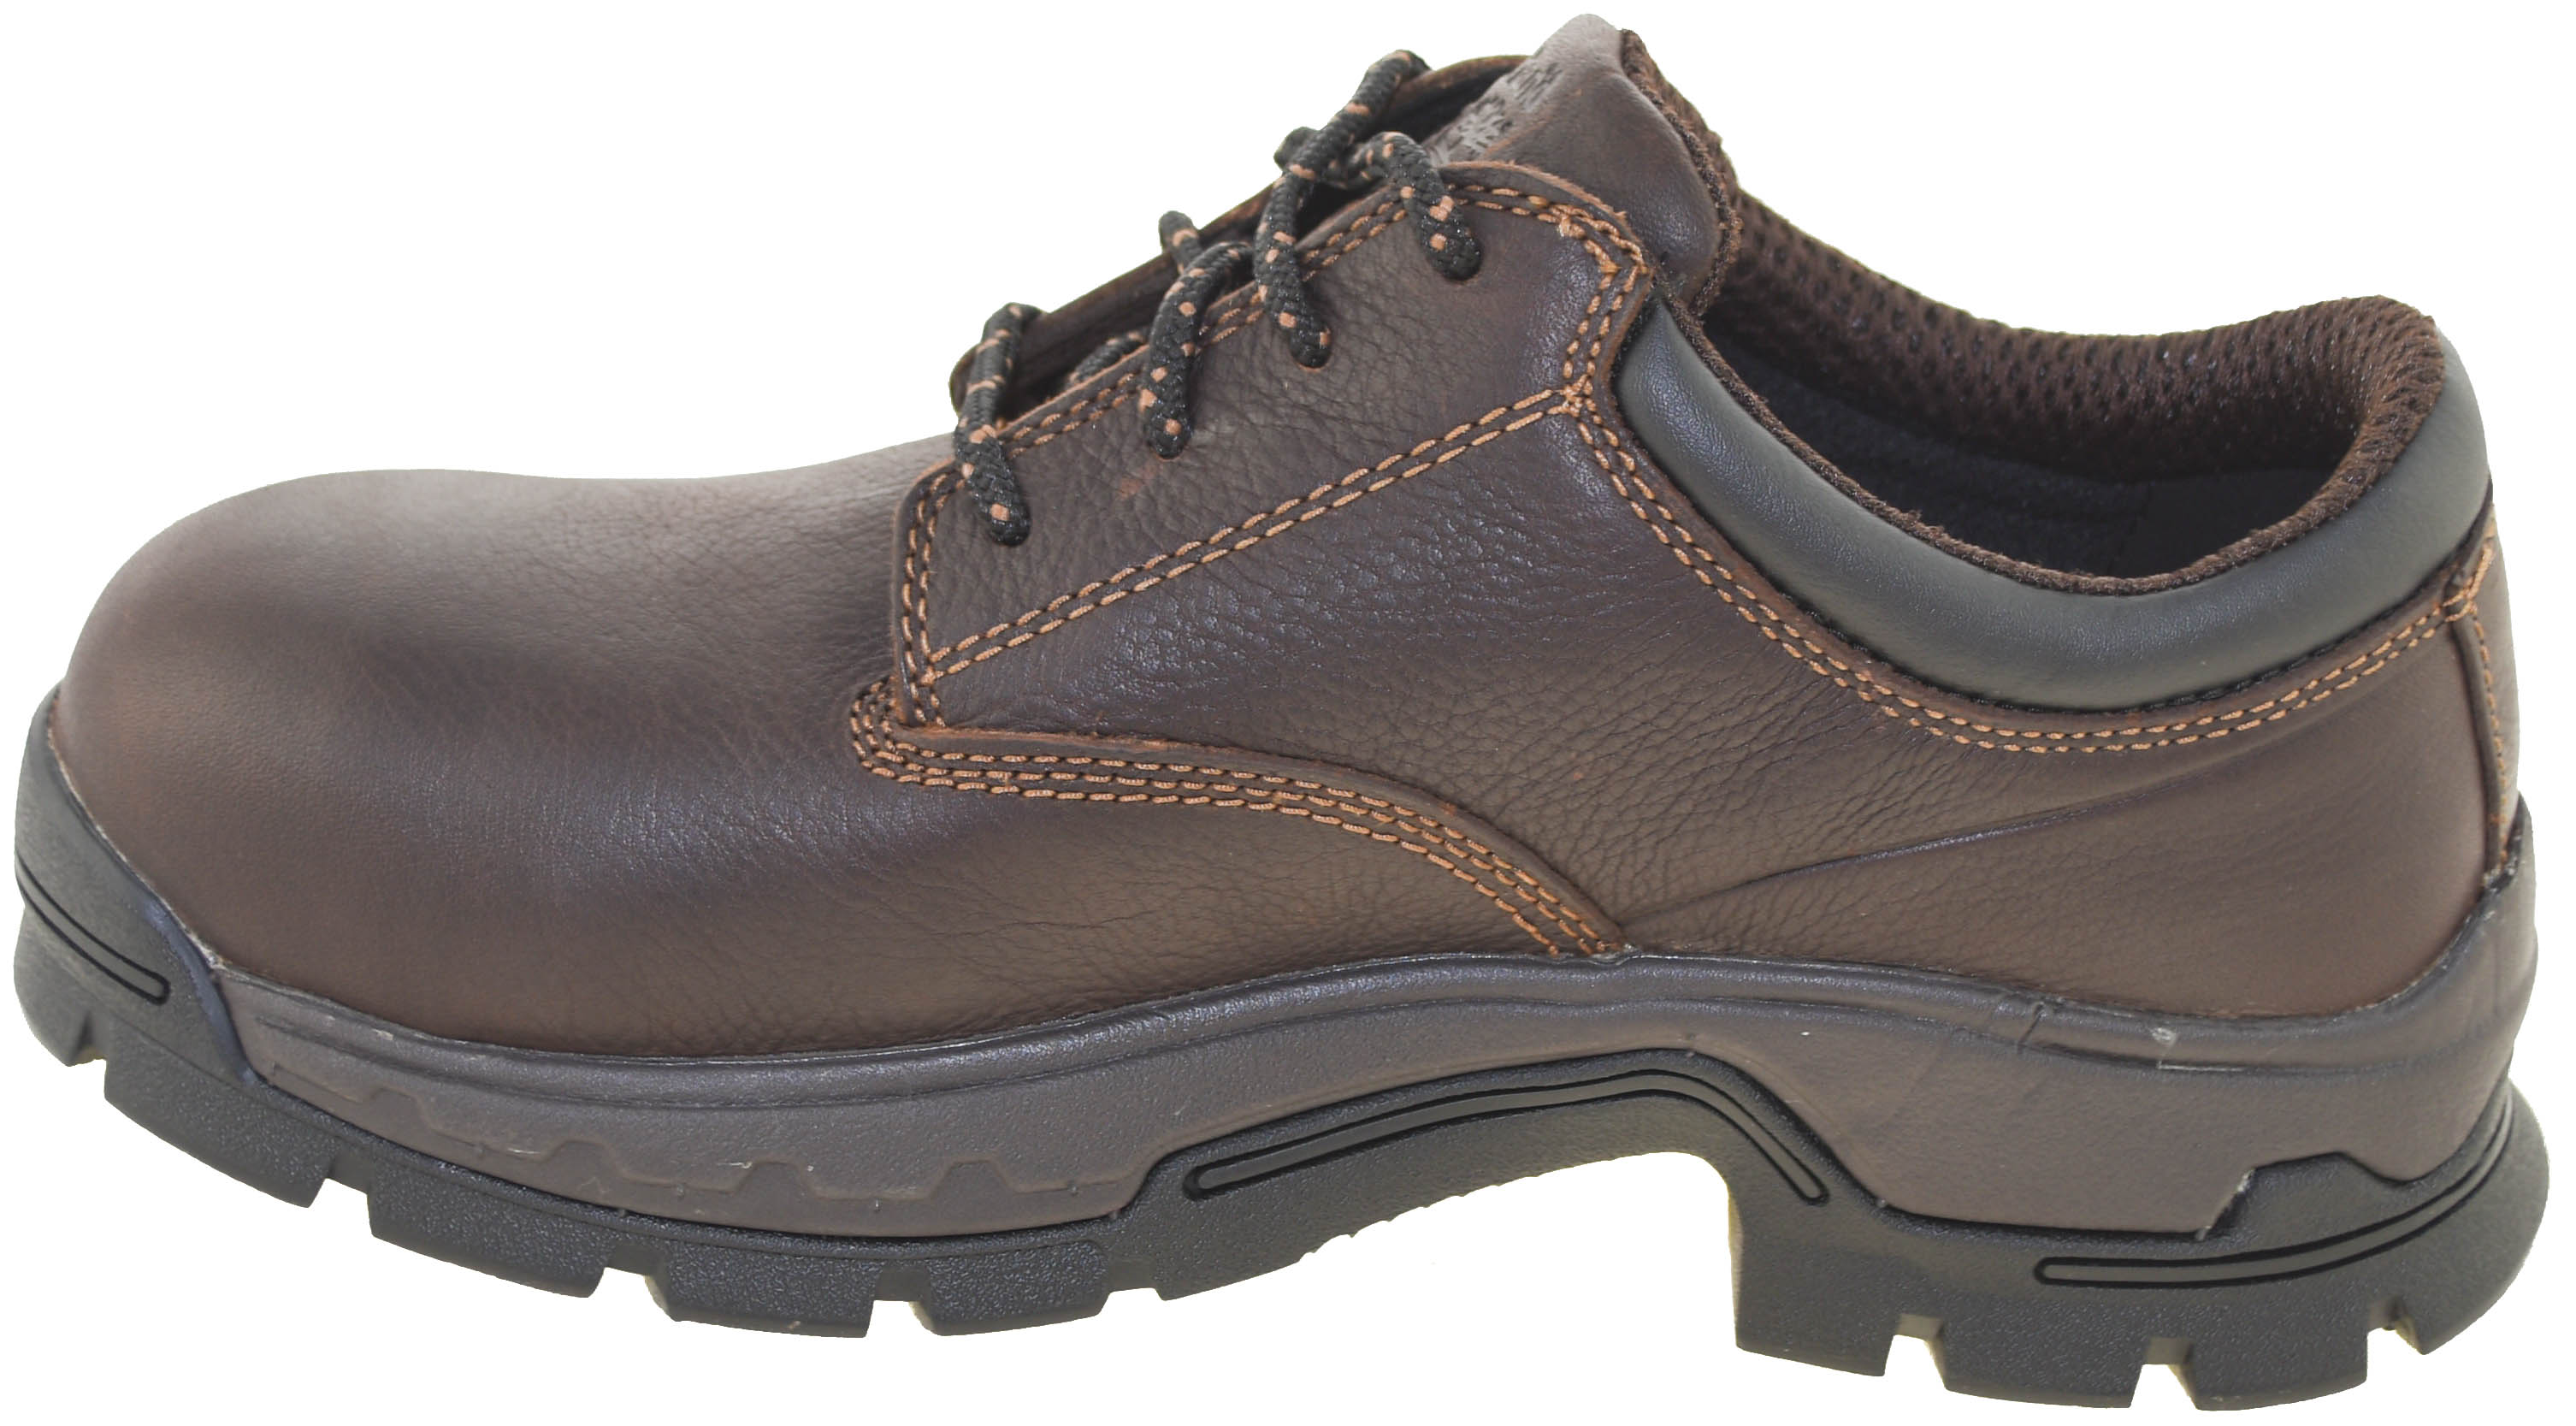 532461c1297 Details about Timberland Pro Men's Stockdale Alloy Safety Toe Waterproof  Oxford Brown Style A1